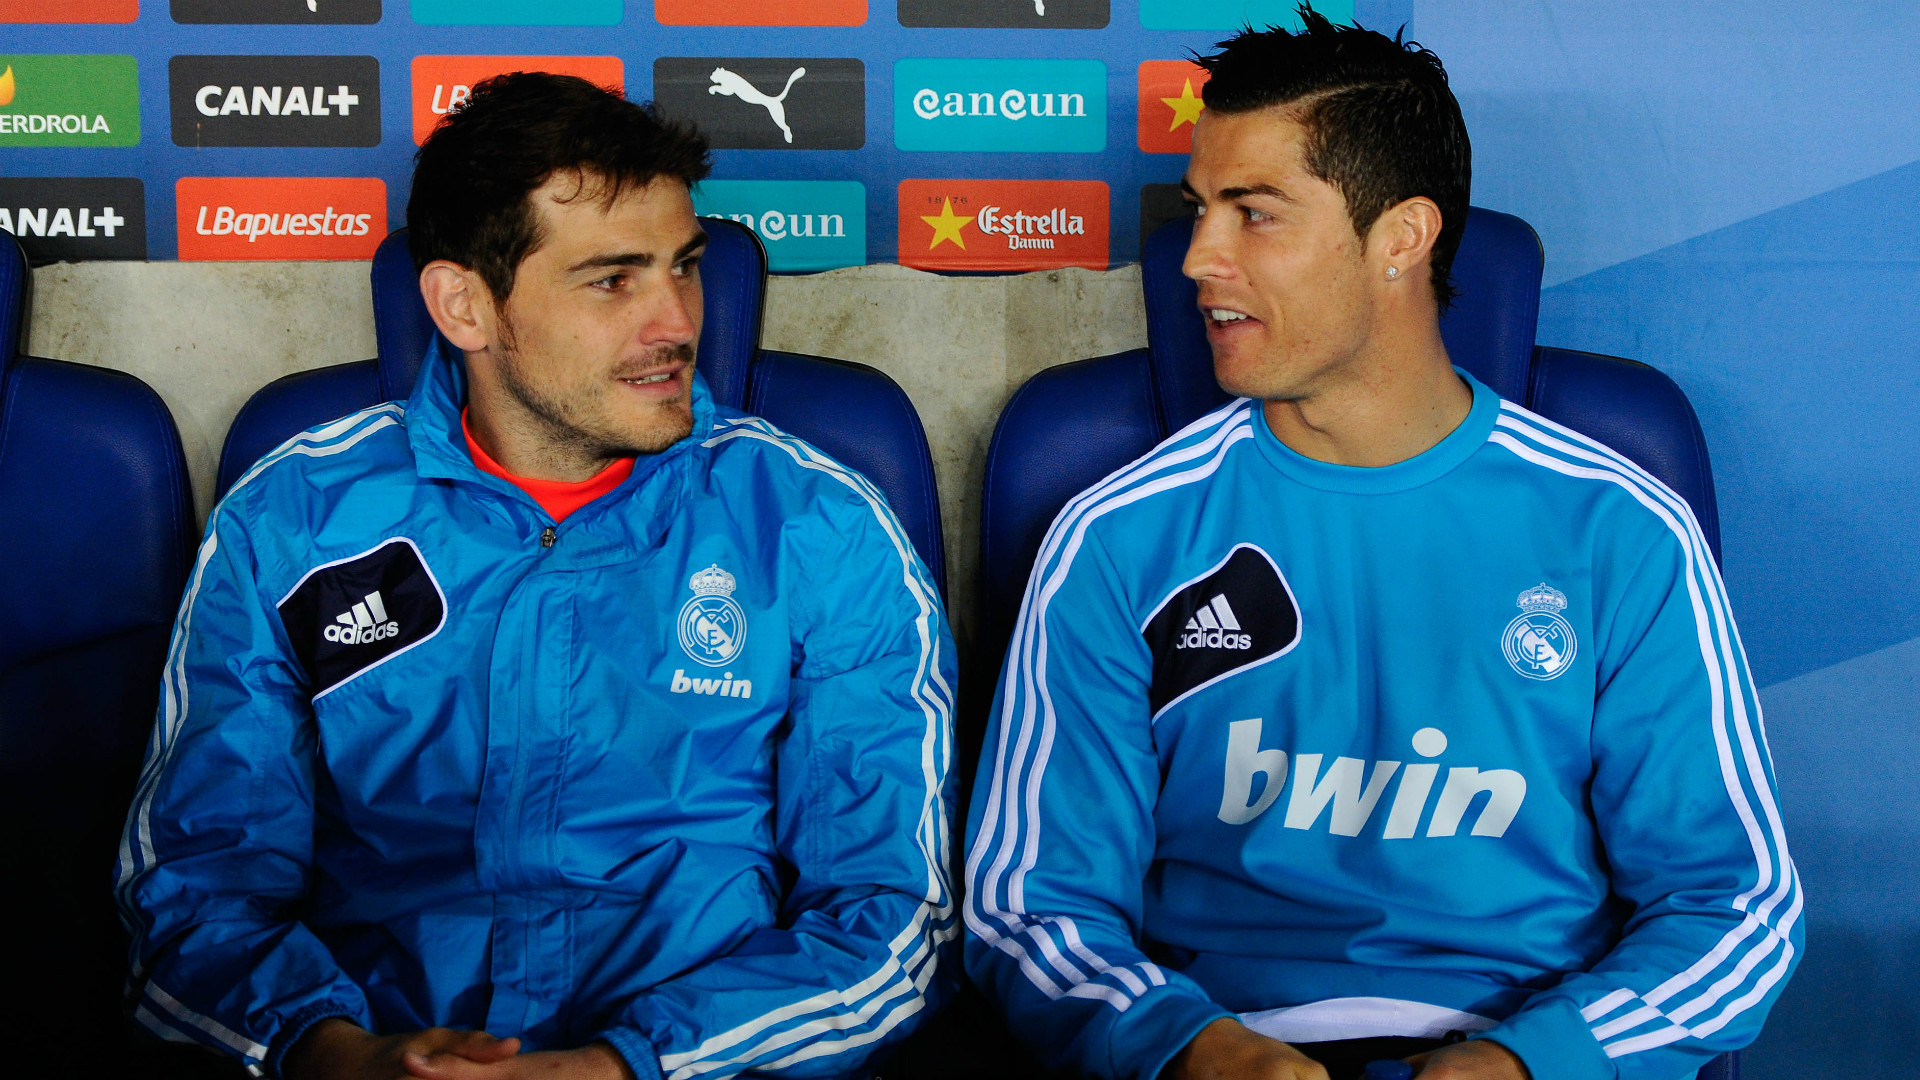 'Ronaldo and Casillas will leave Real Madrid'